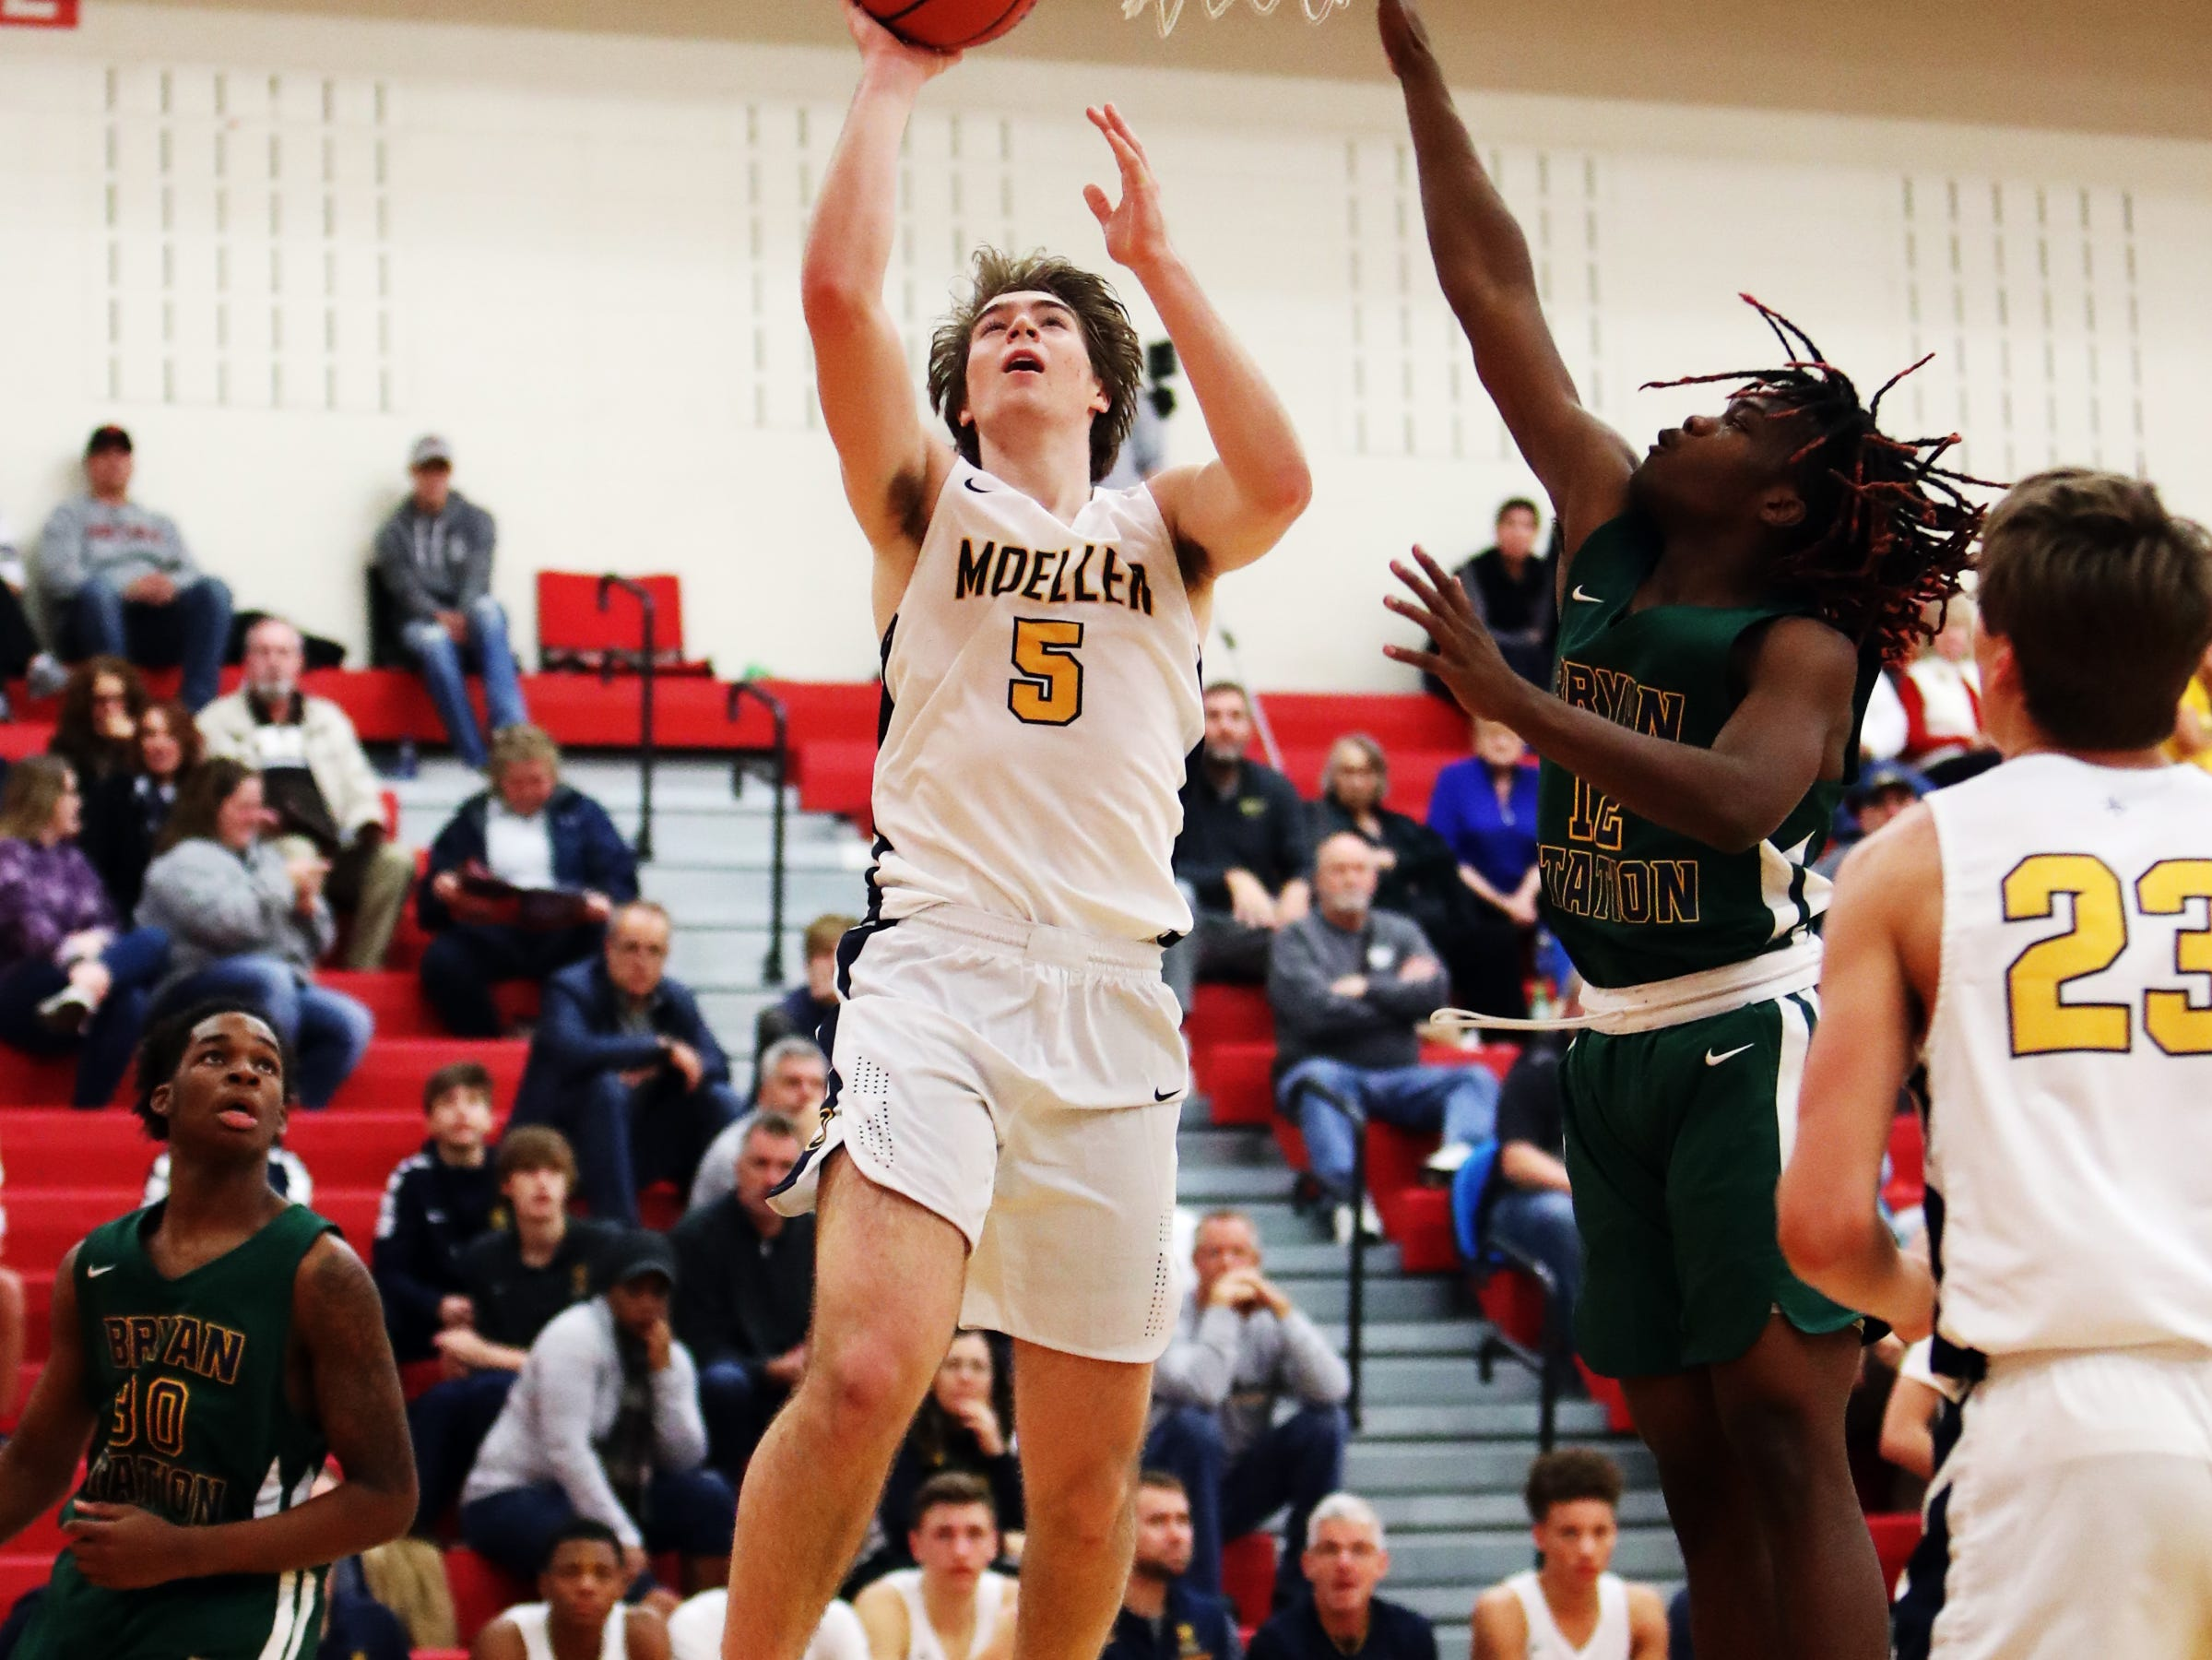 Moeller guard Alec Pfreim scores on a fast break opportunity at the Ohio Valley Hoops Classic at Hillsboro High School. Moeller defeated Bryan Station 85-42.